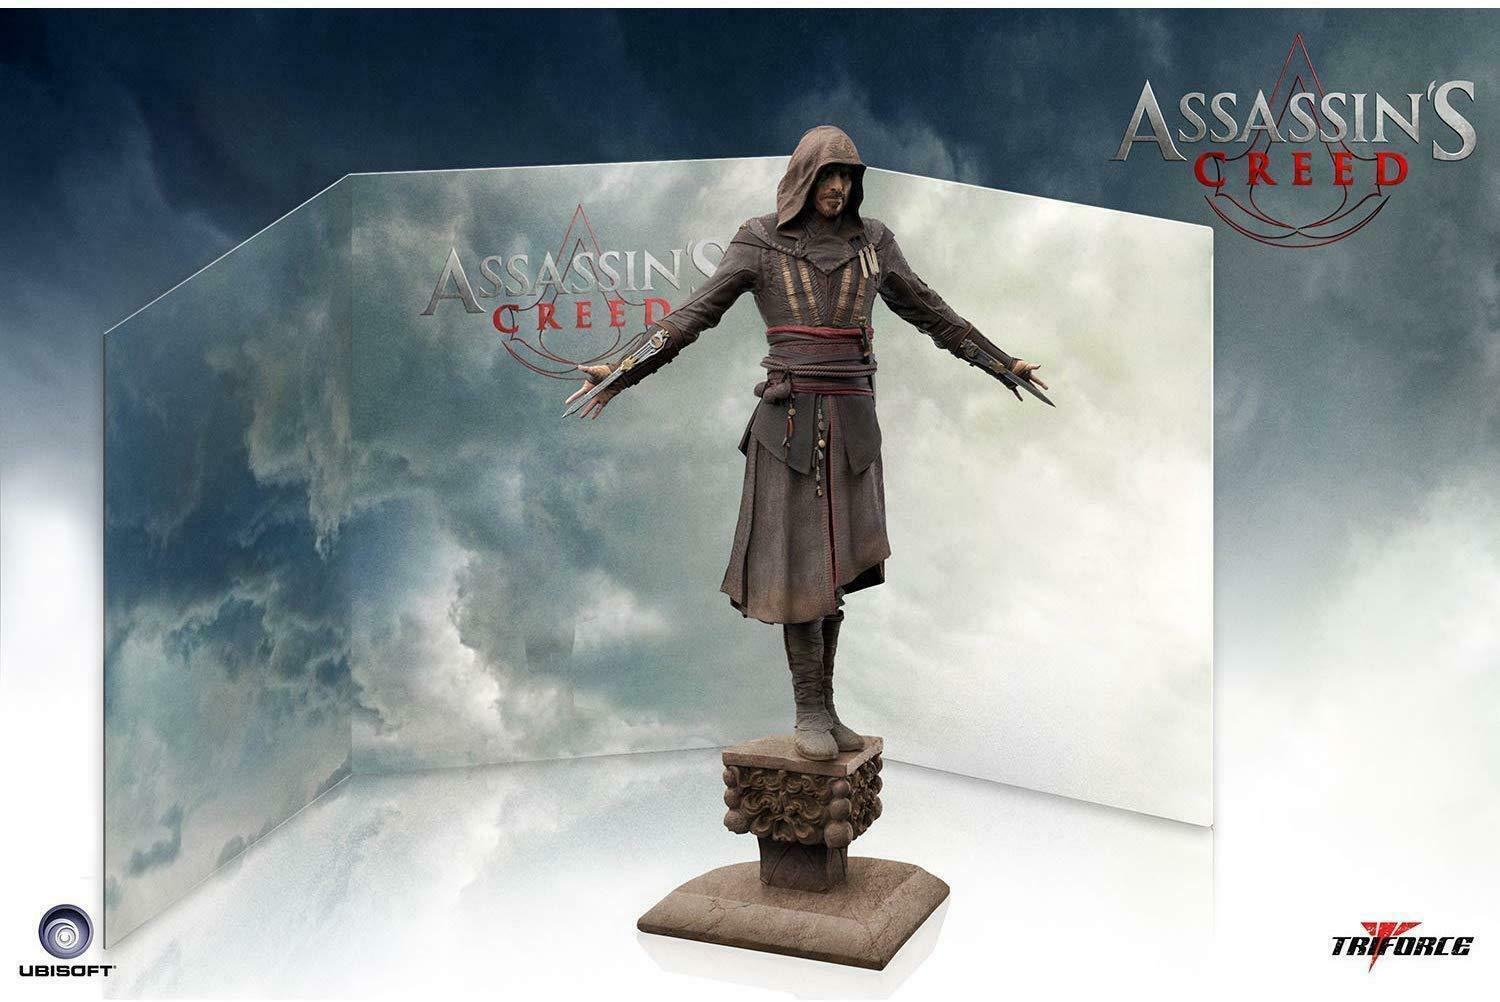 Assassin's Creed Collector's Edition Aguilar de Nerha Statue